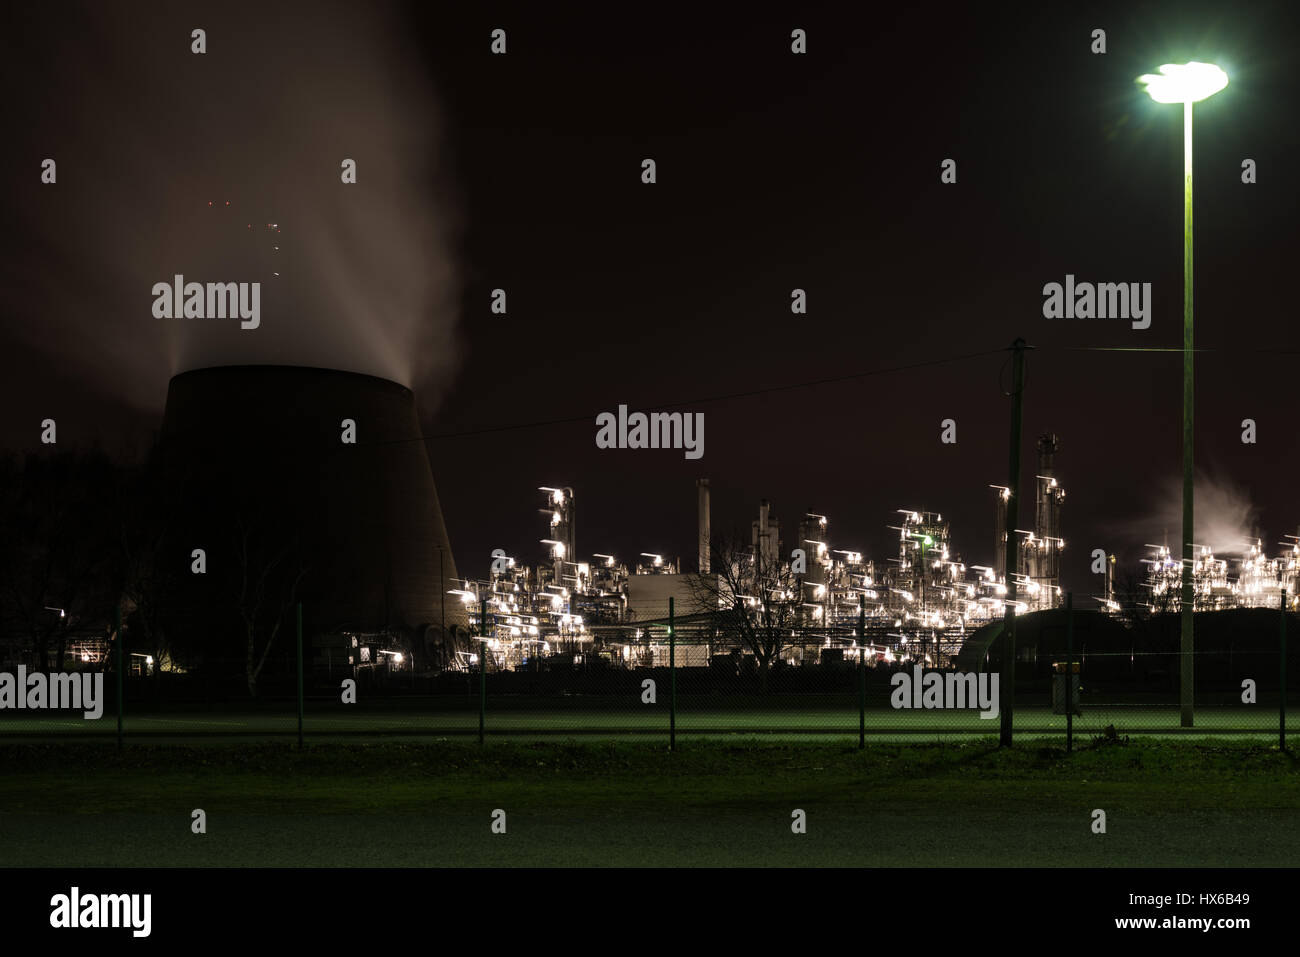 Oil refinery at night - Stock Image